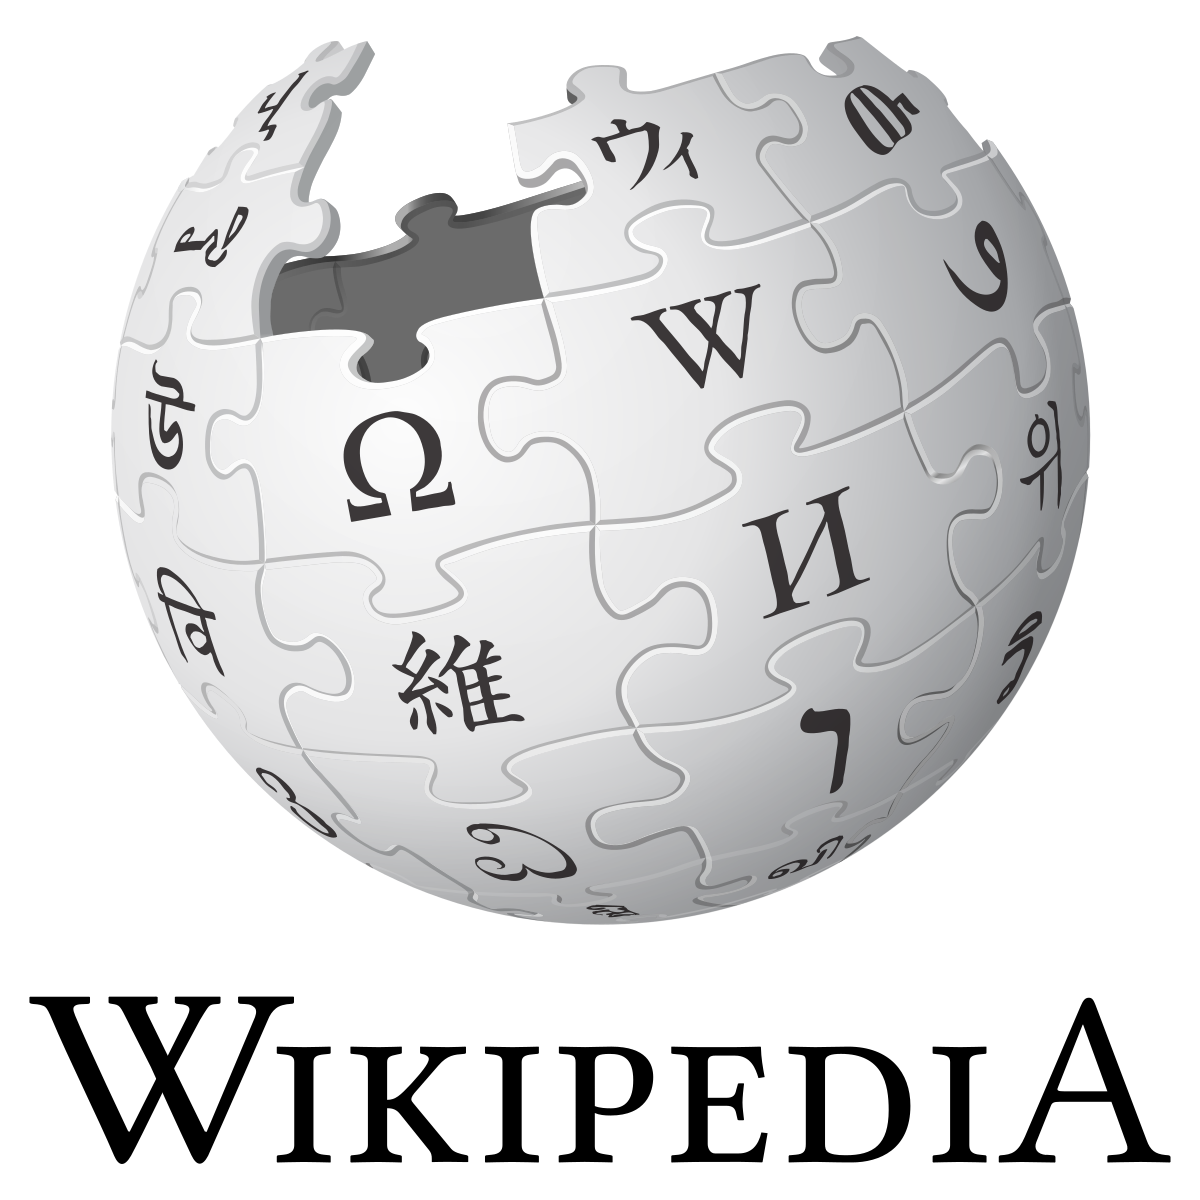 Disseminate your research with Wikipedia